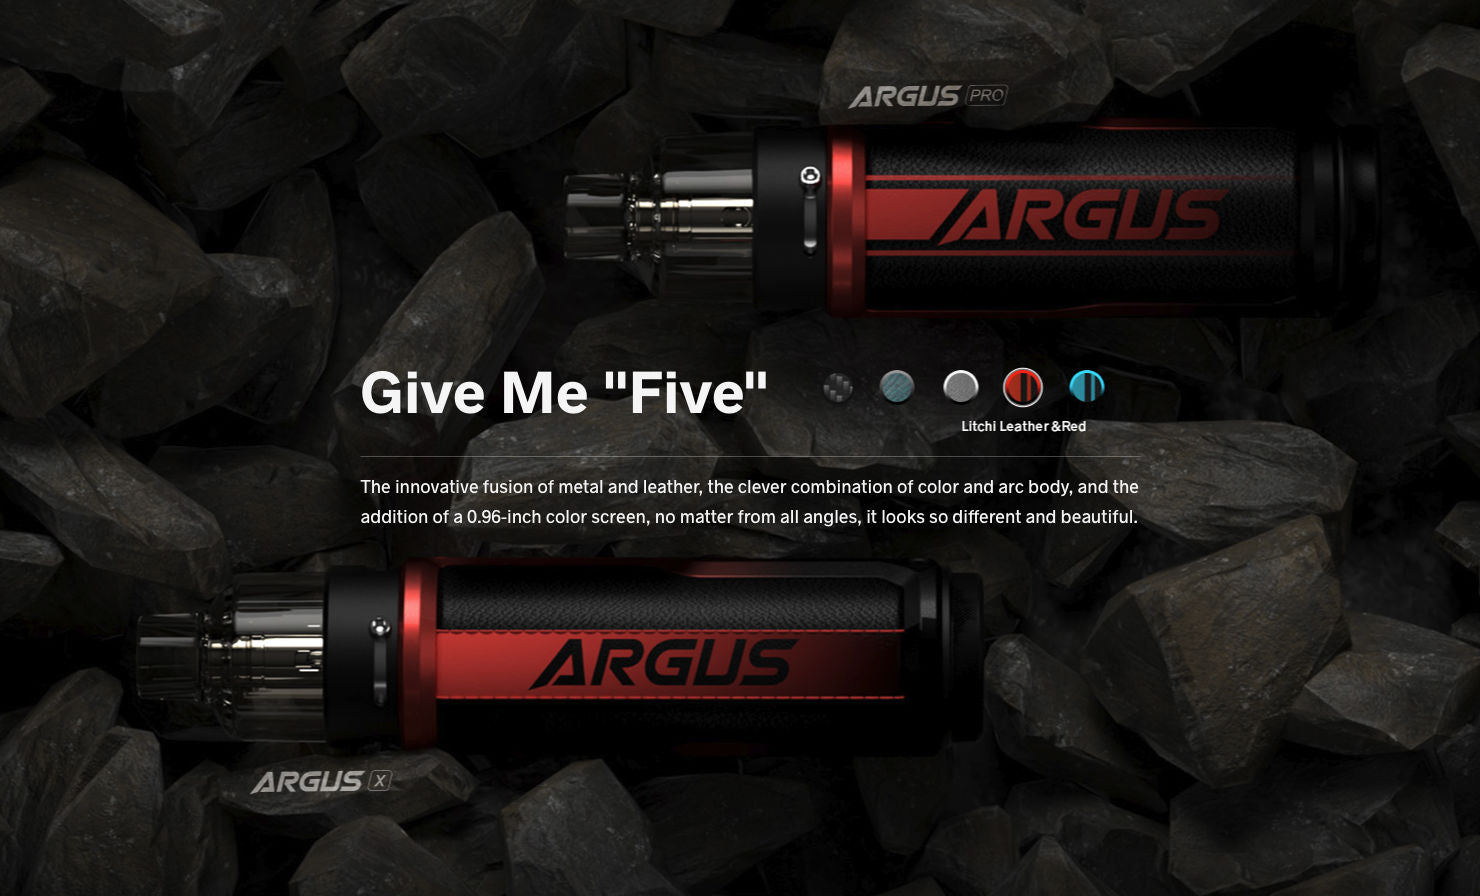 Argus PX features a great combination of metal and leather materials